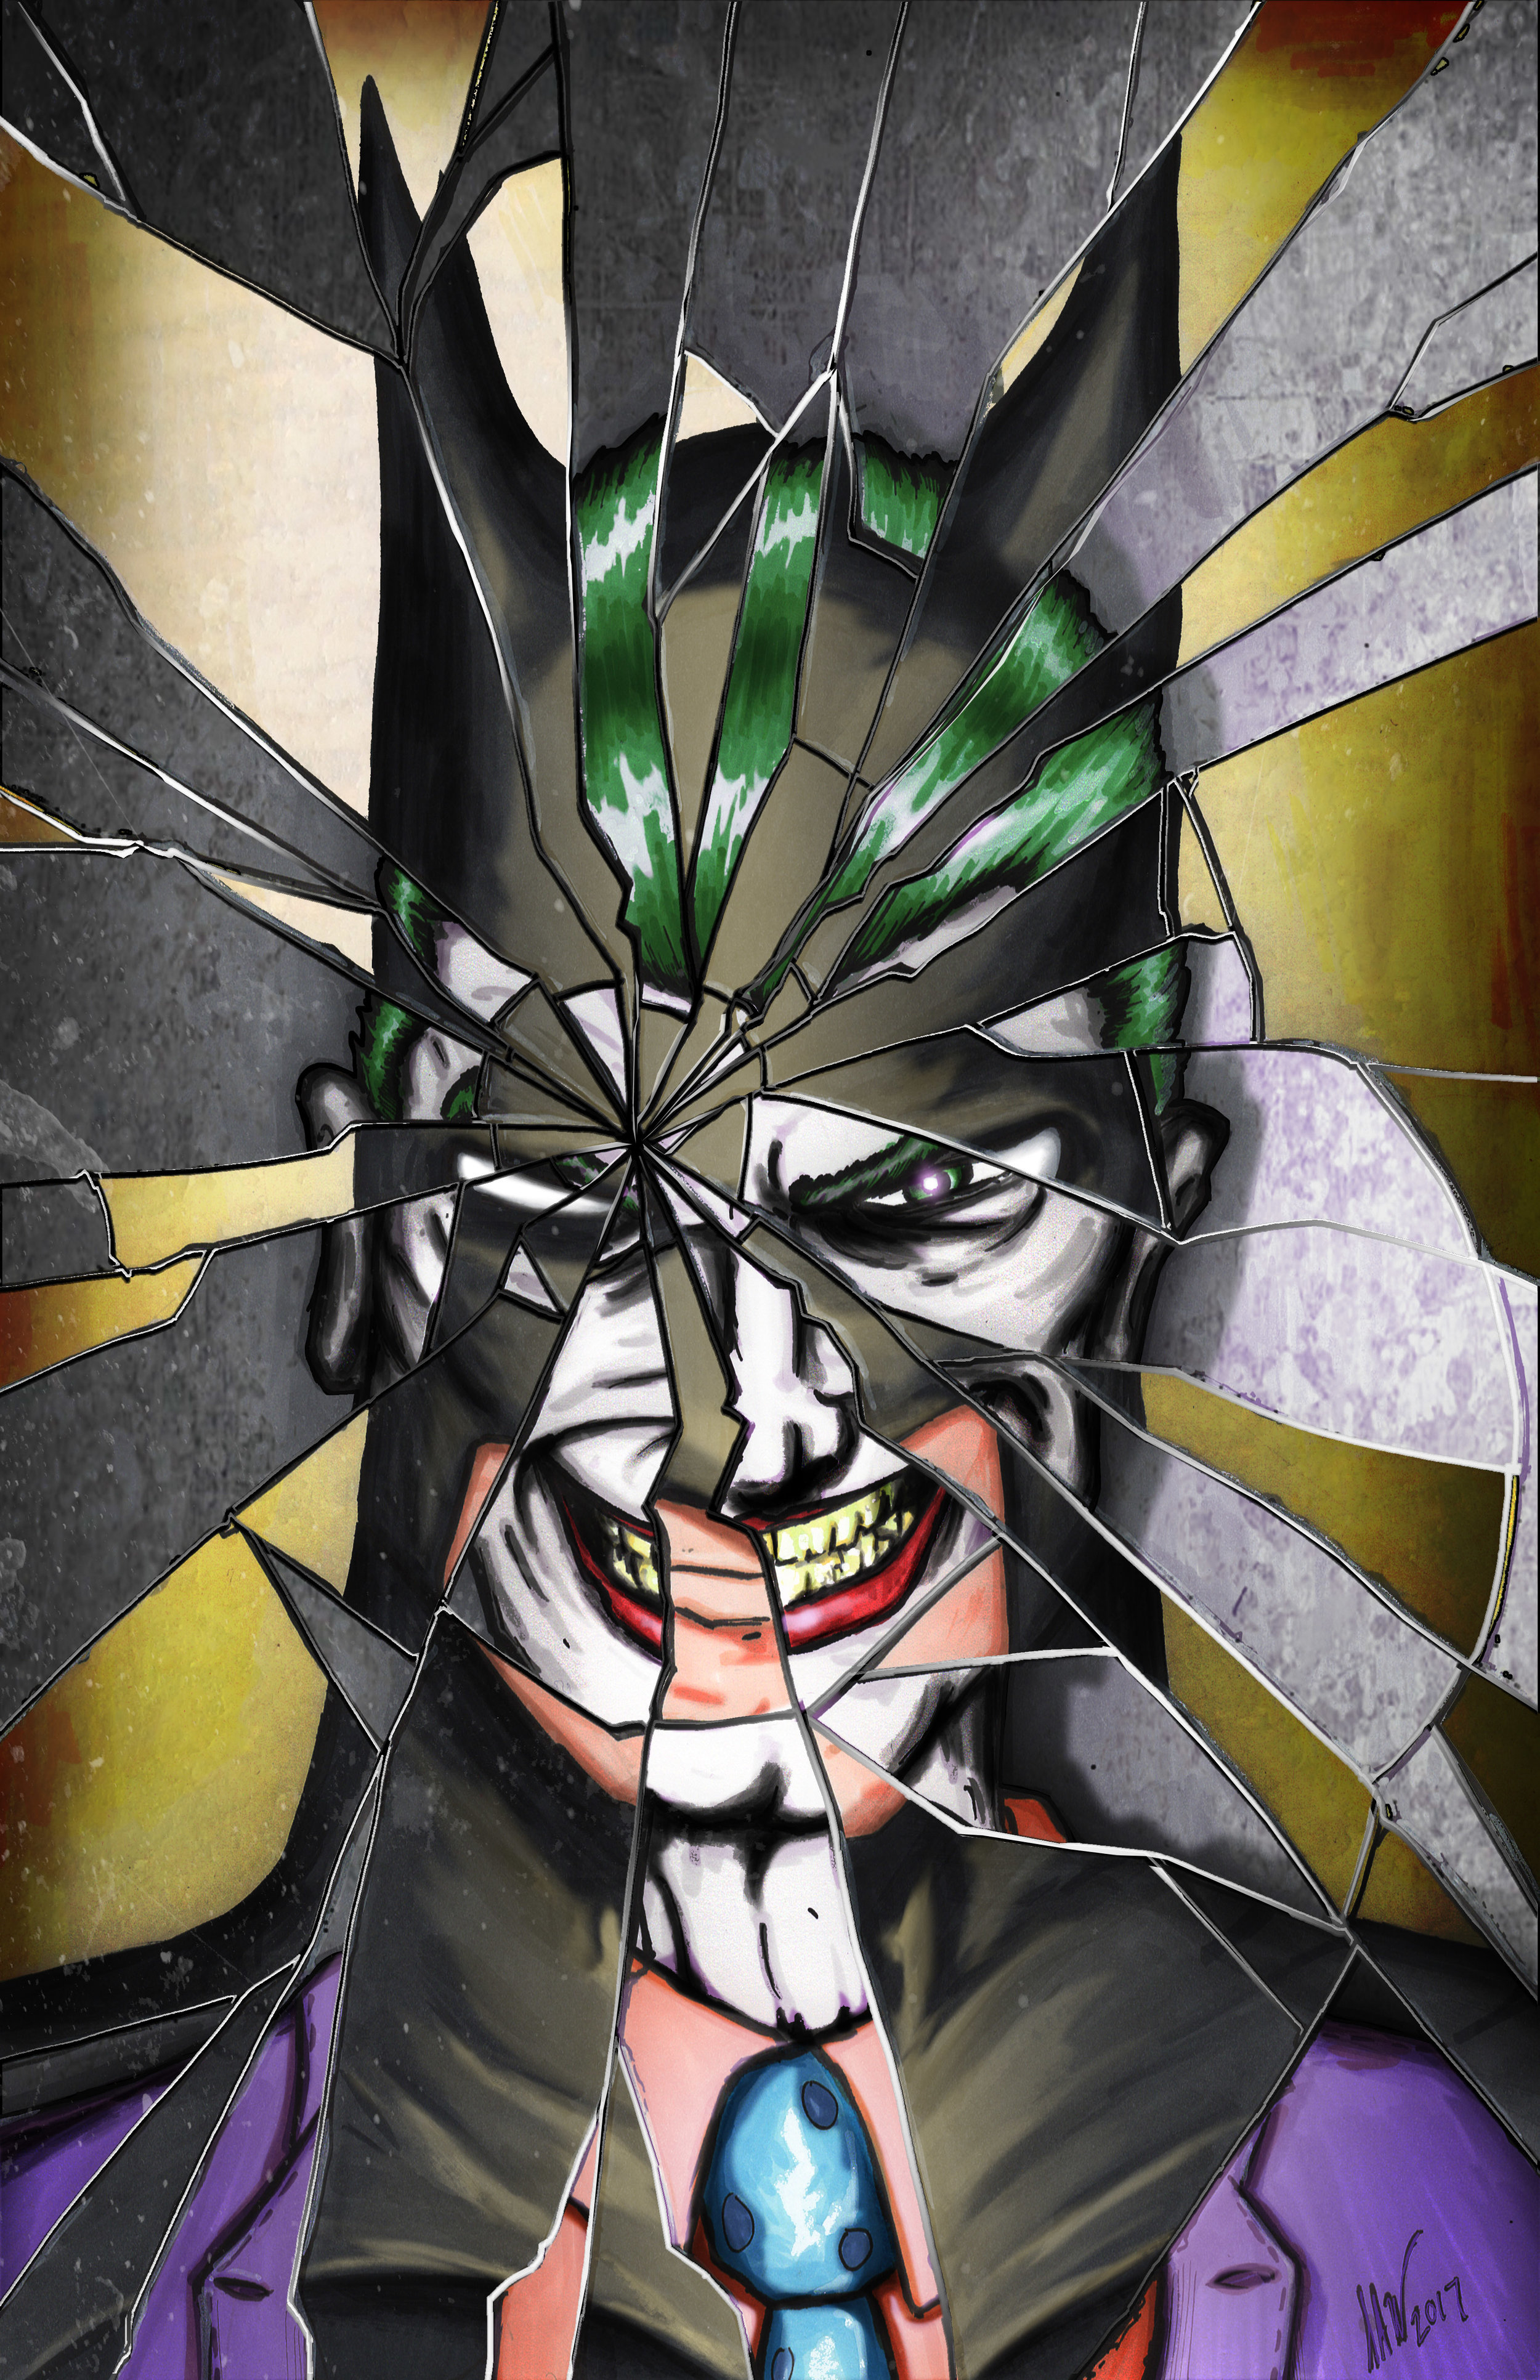 Batman-Joker-Mirror-Mirror 11x17.jpg